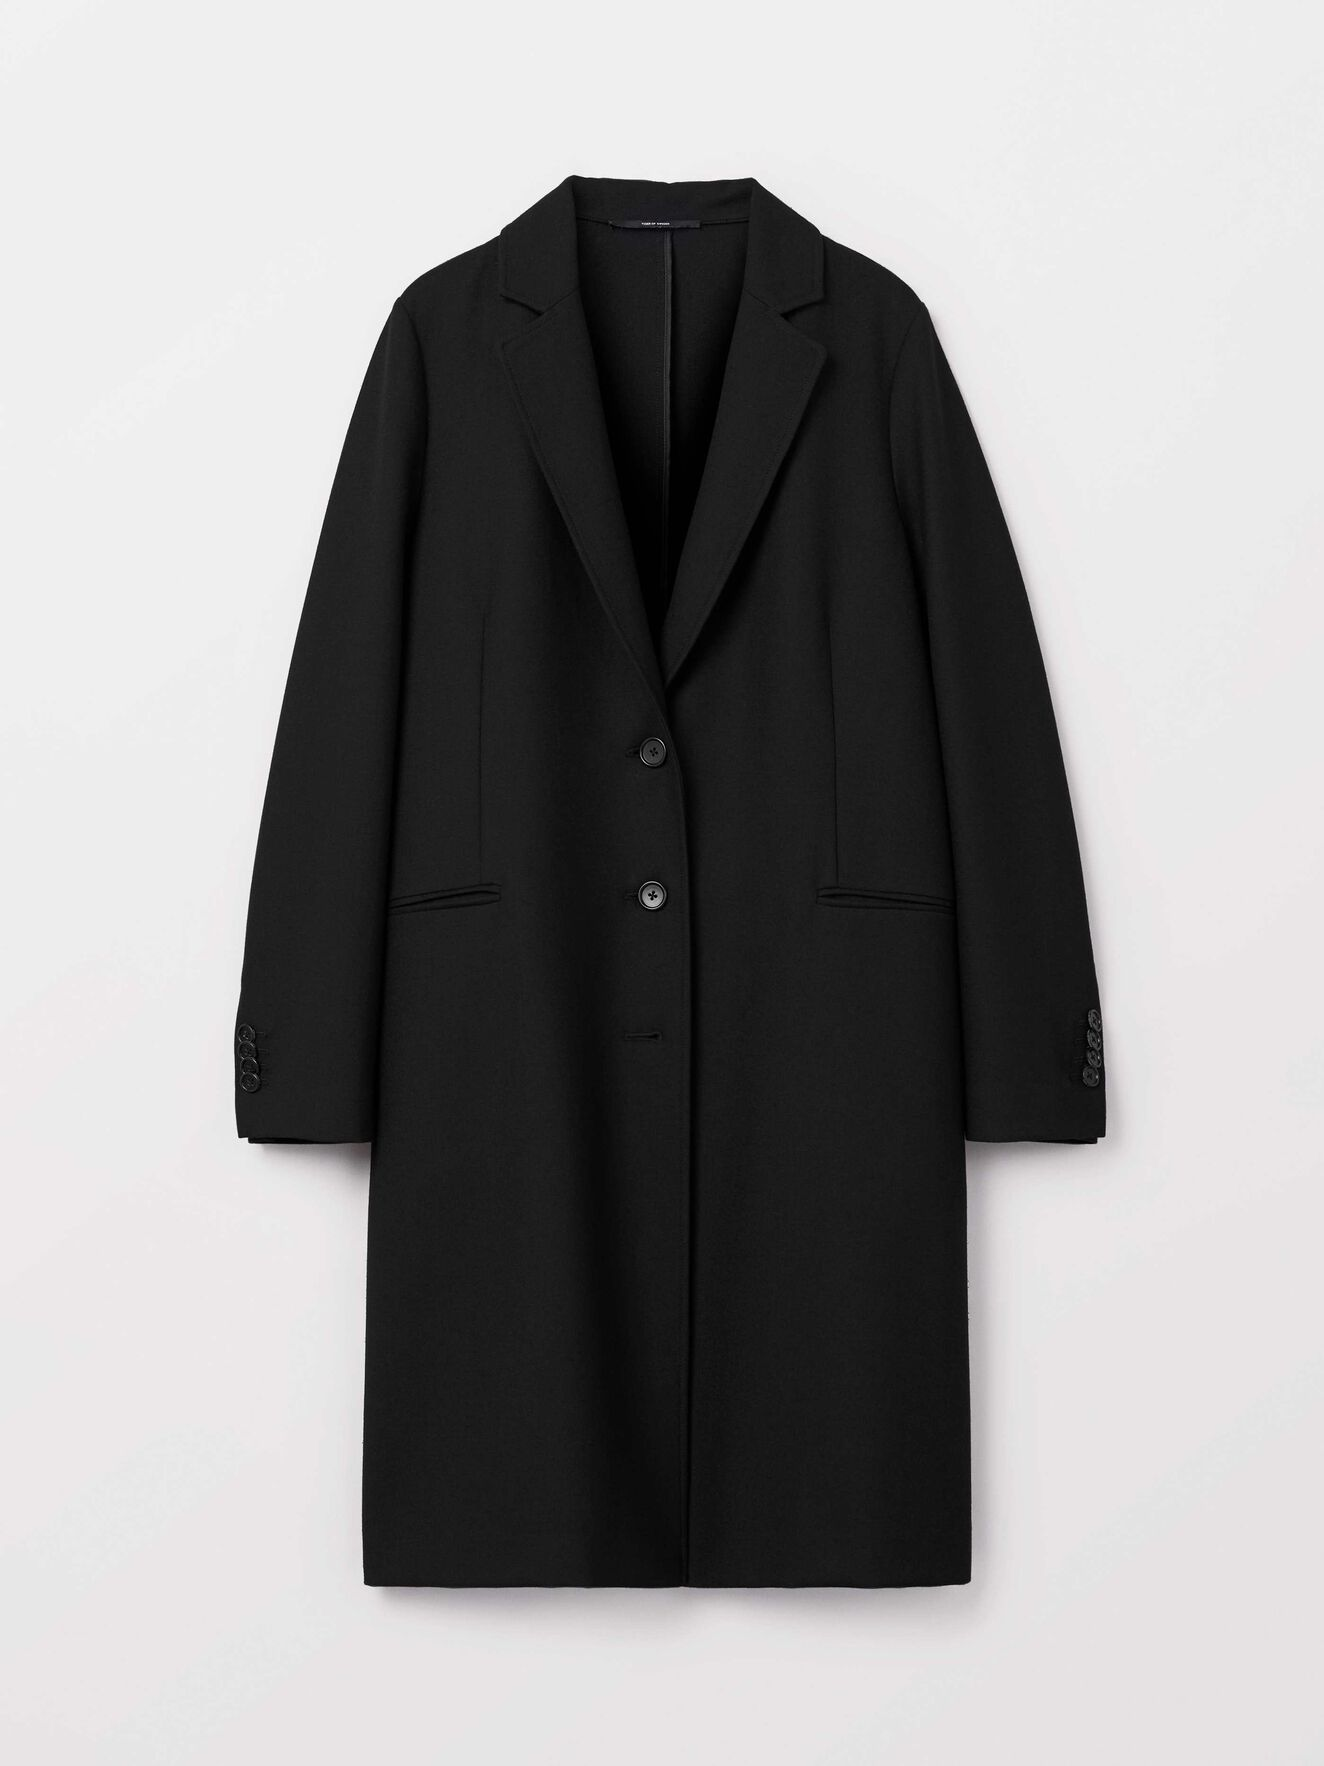 Cianne Coat in Black from Tiger of Sweden